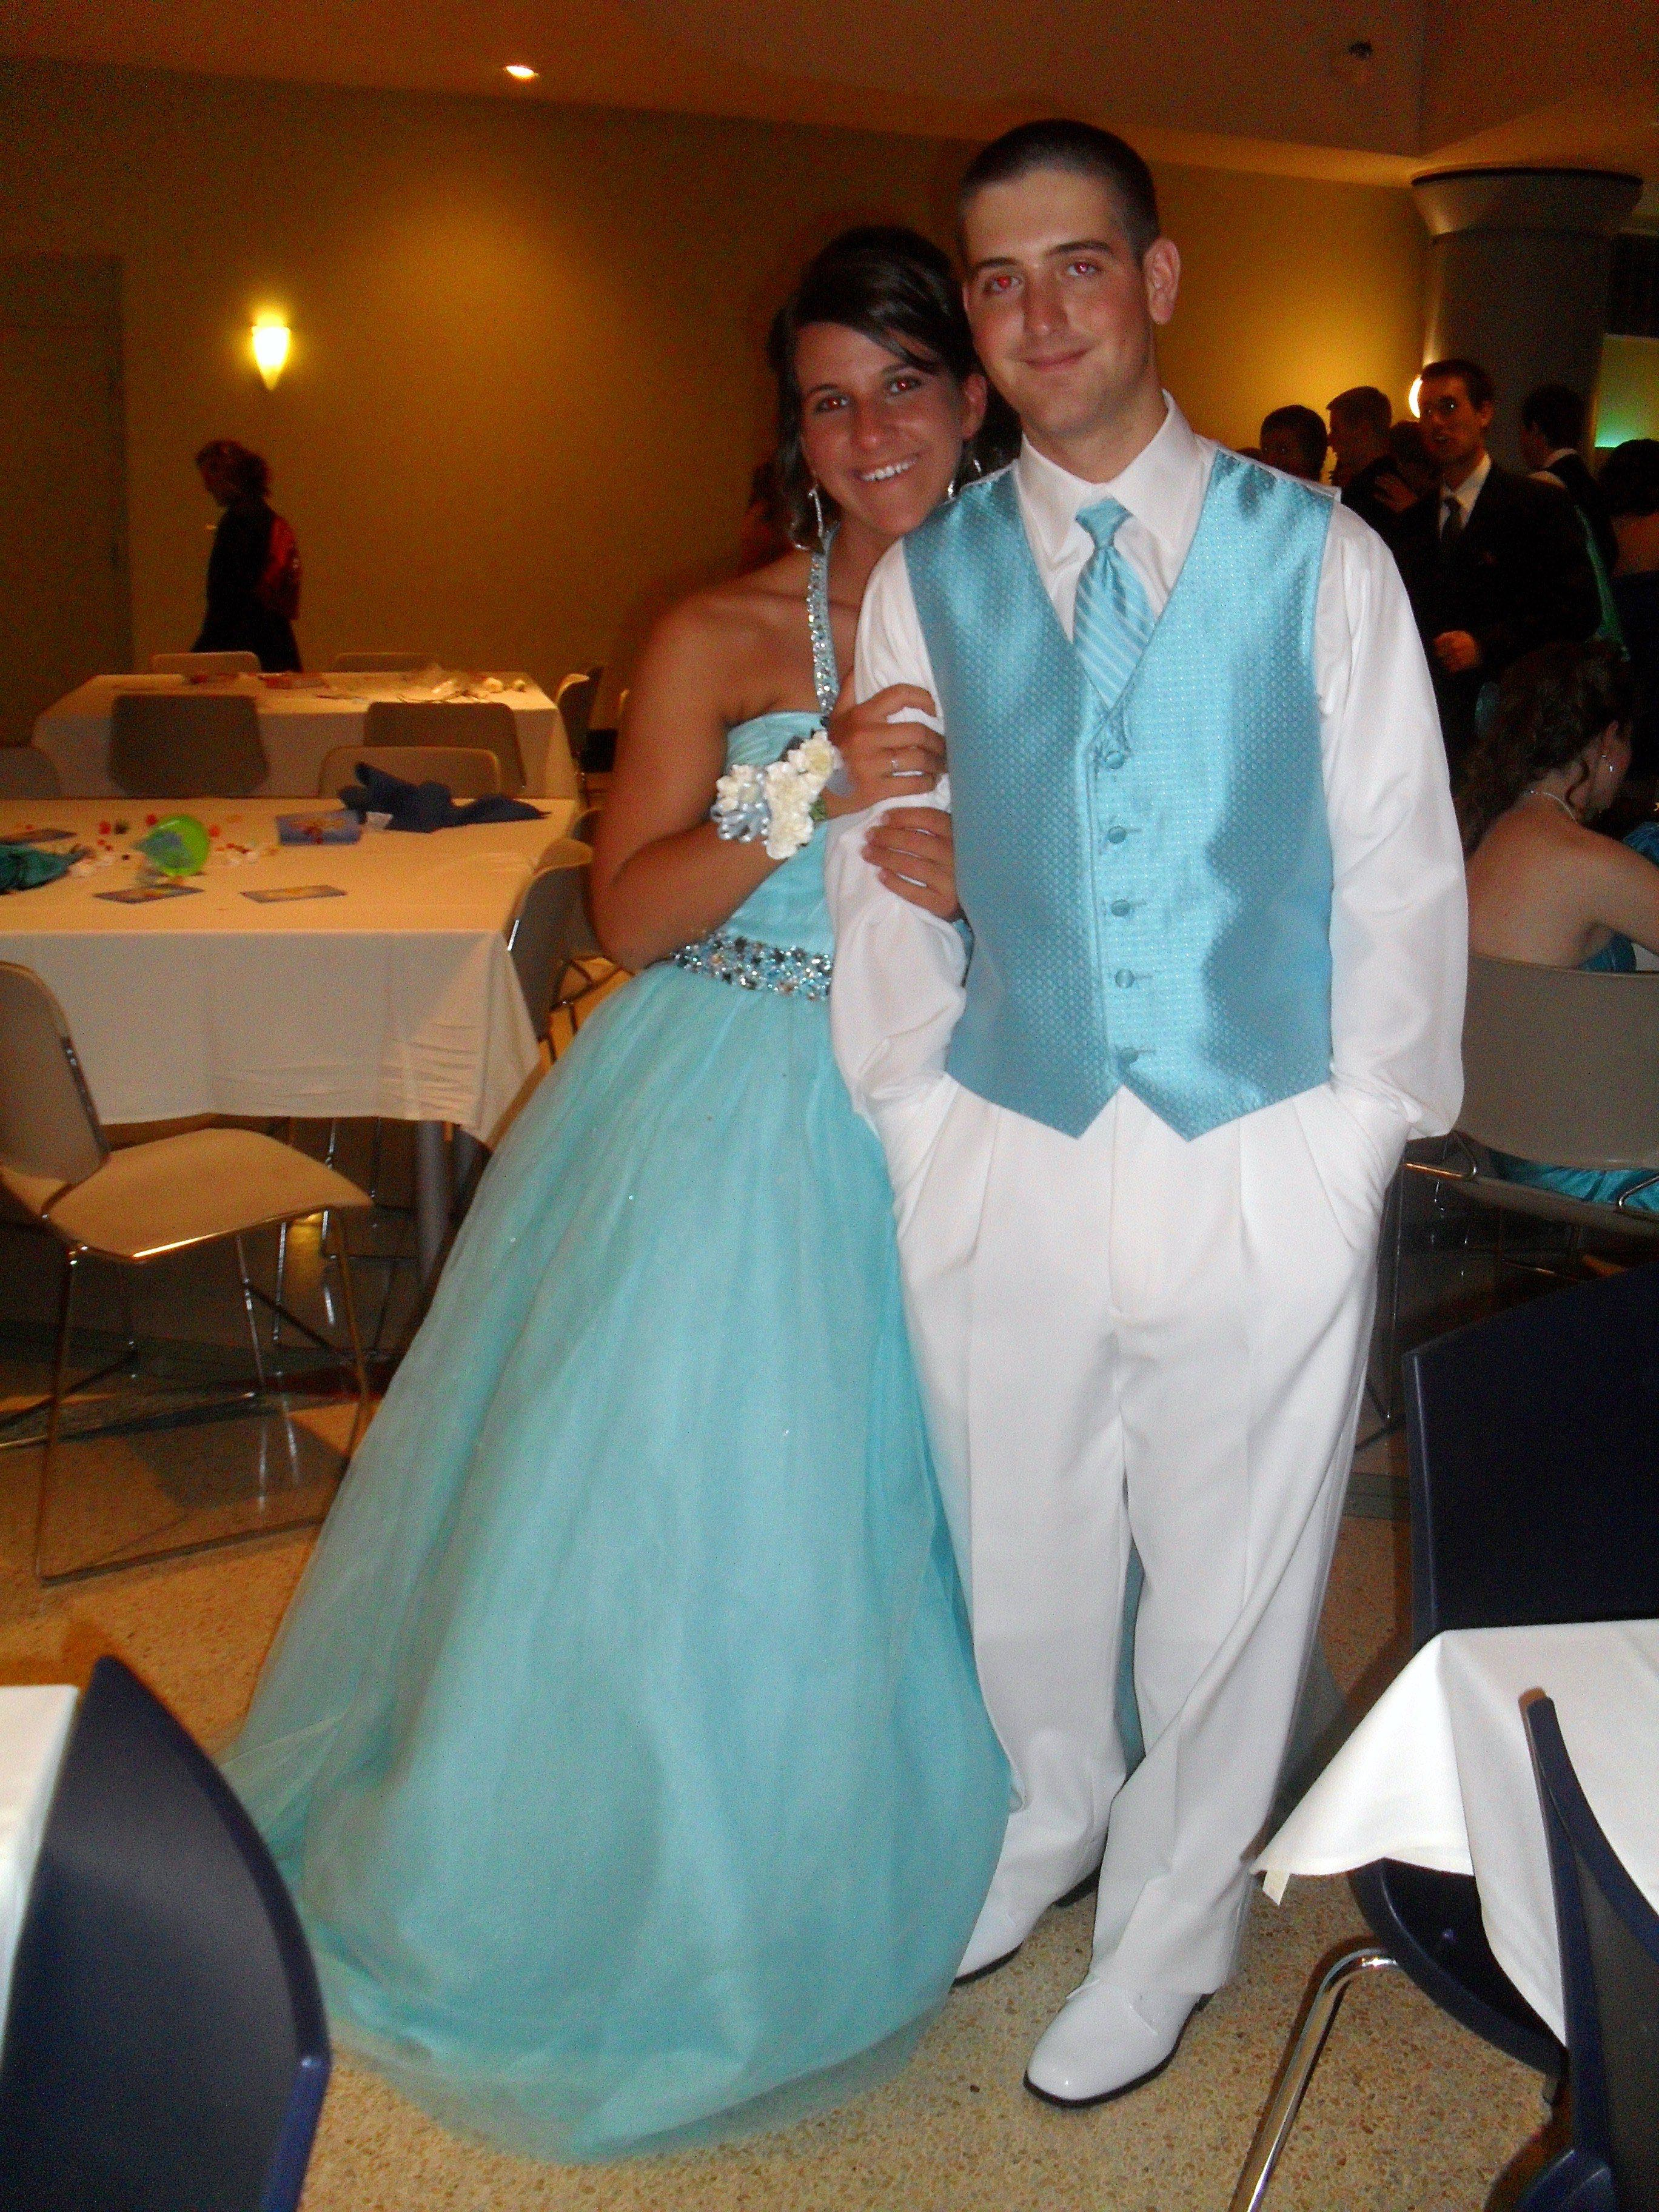 Image 2 of Trista and Tyler